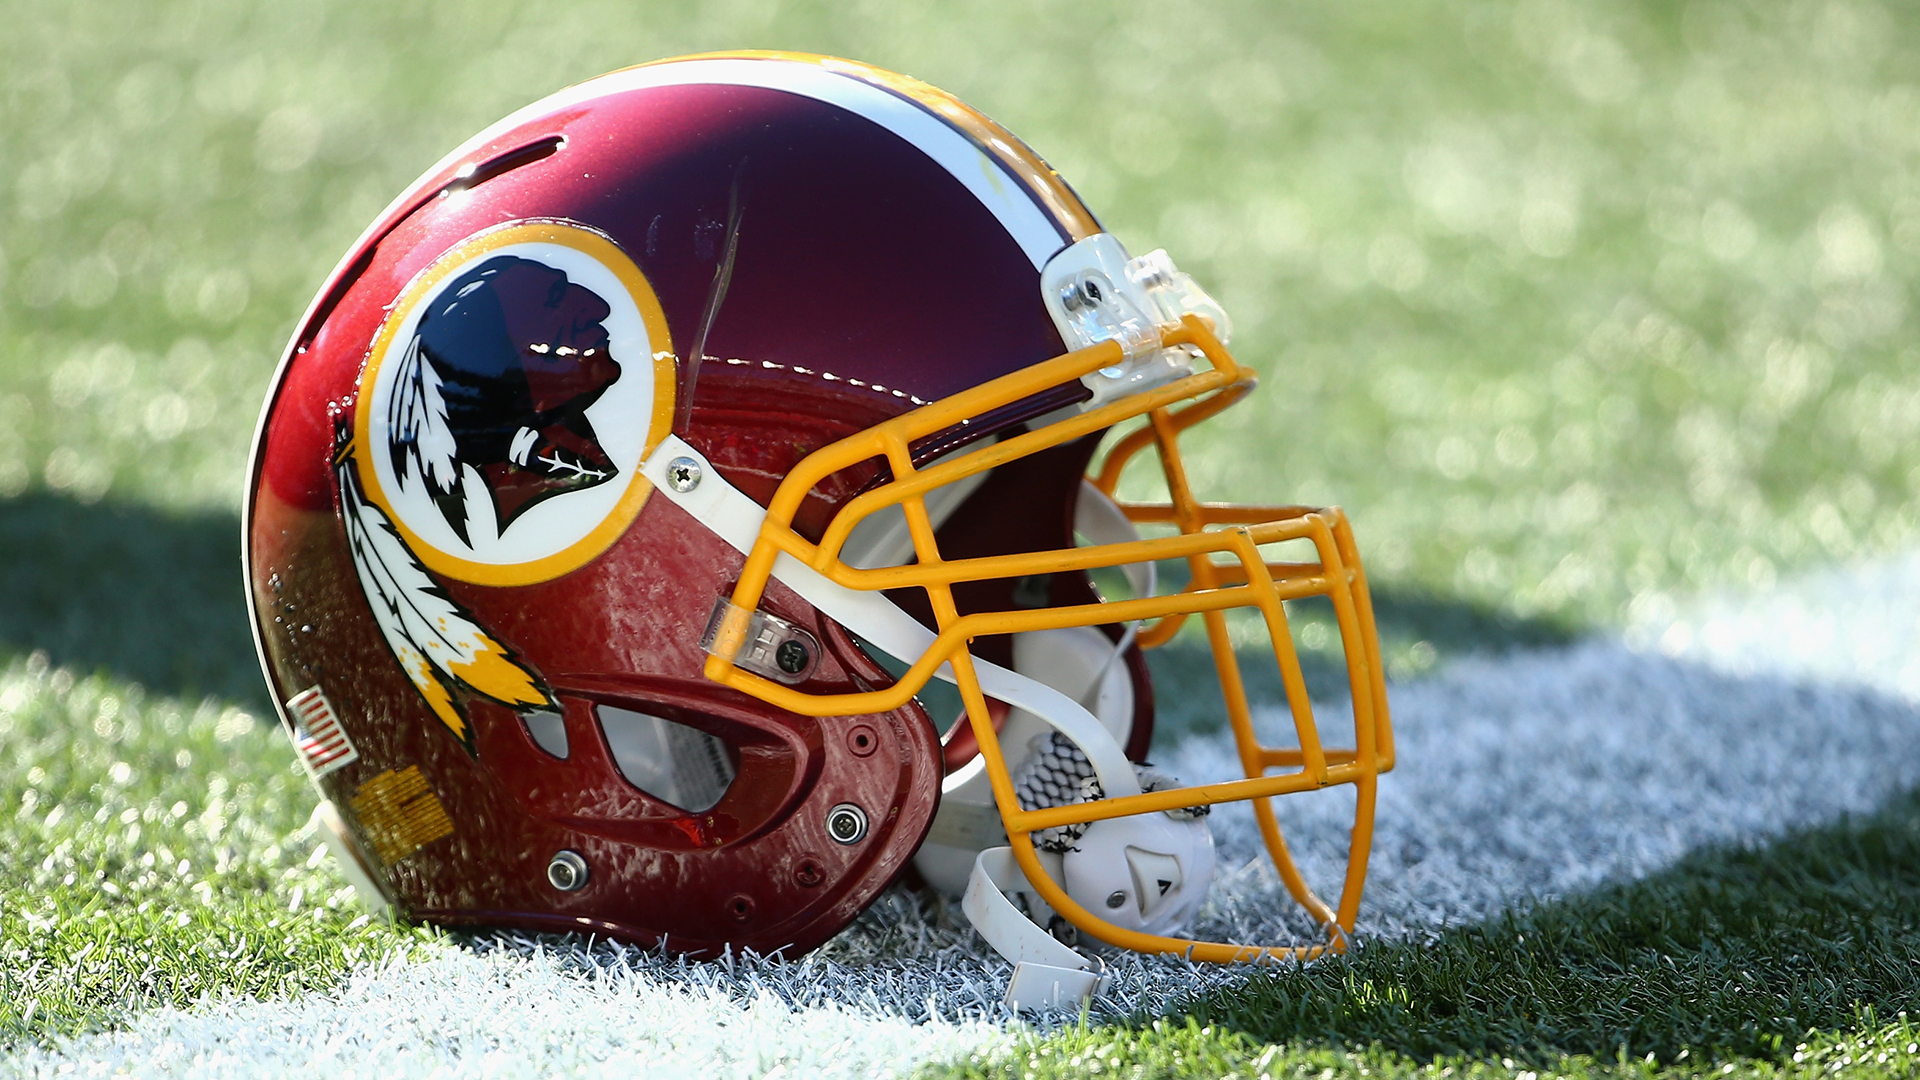 A clear favorite is emerging to replace Redskins as Washington's new team name